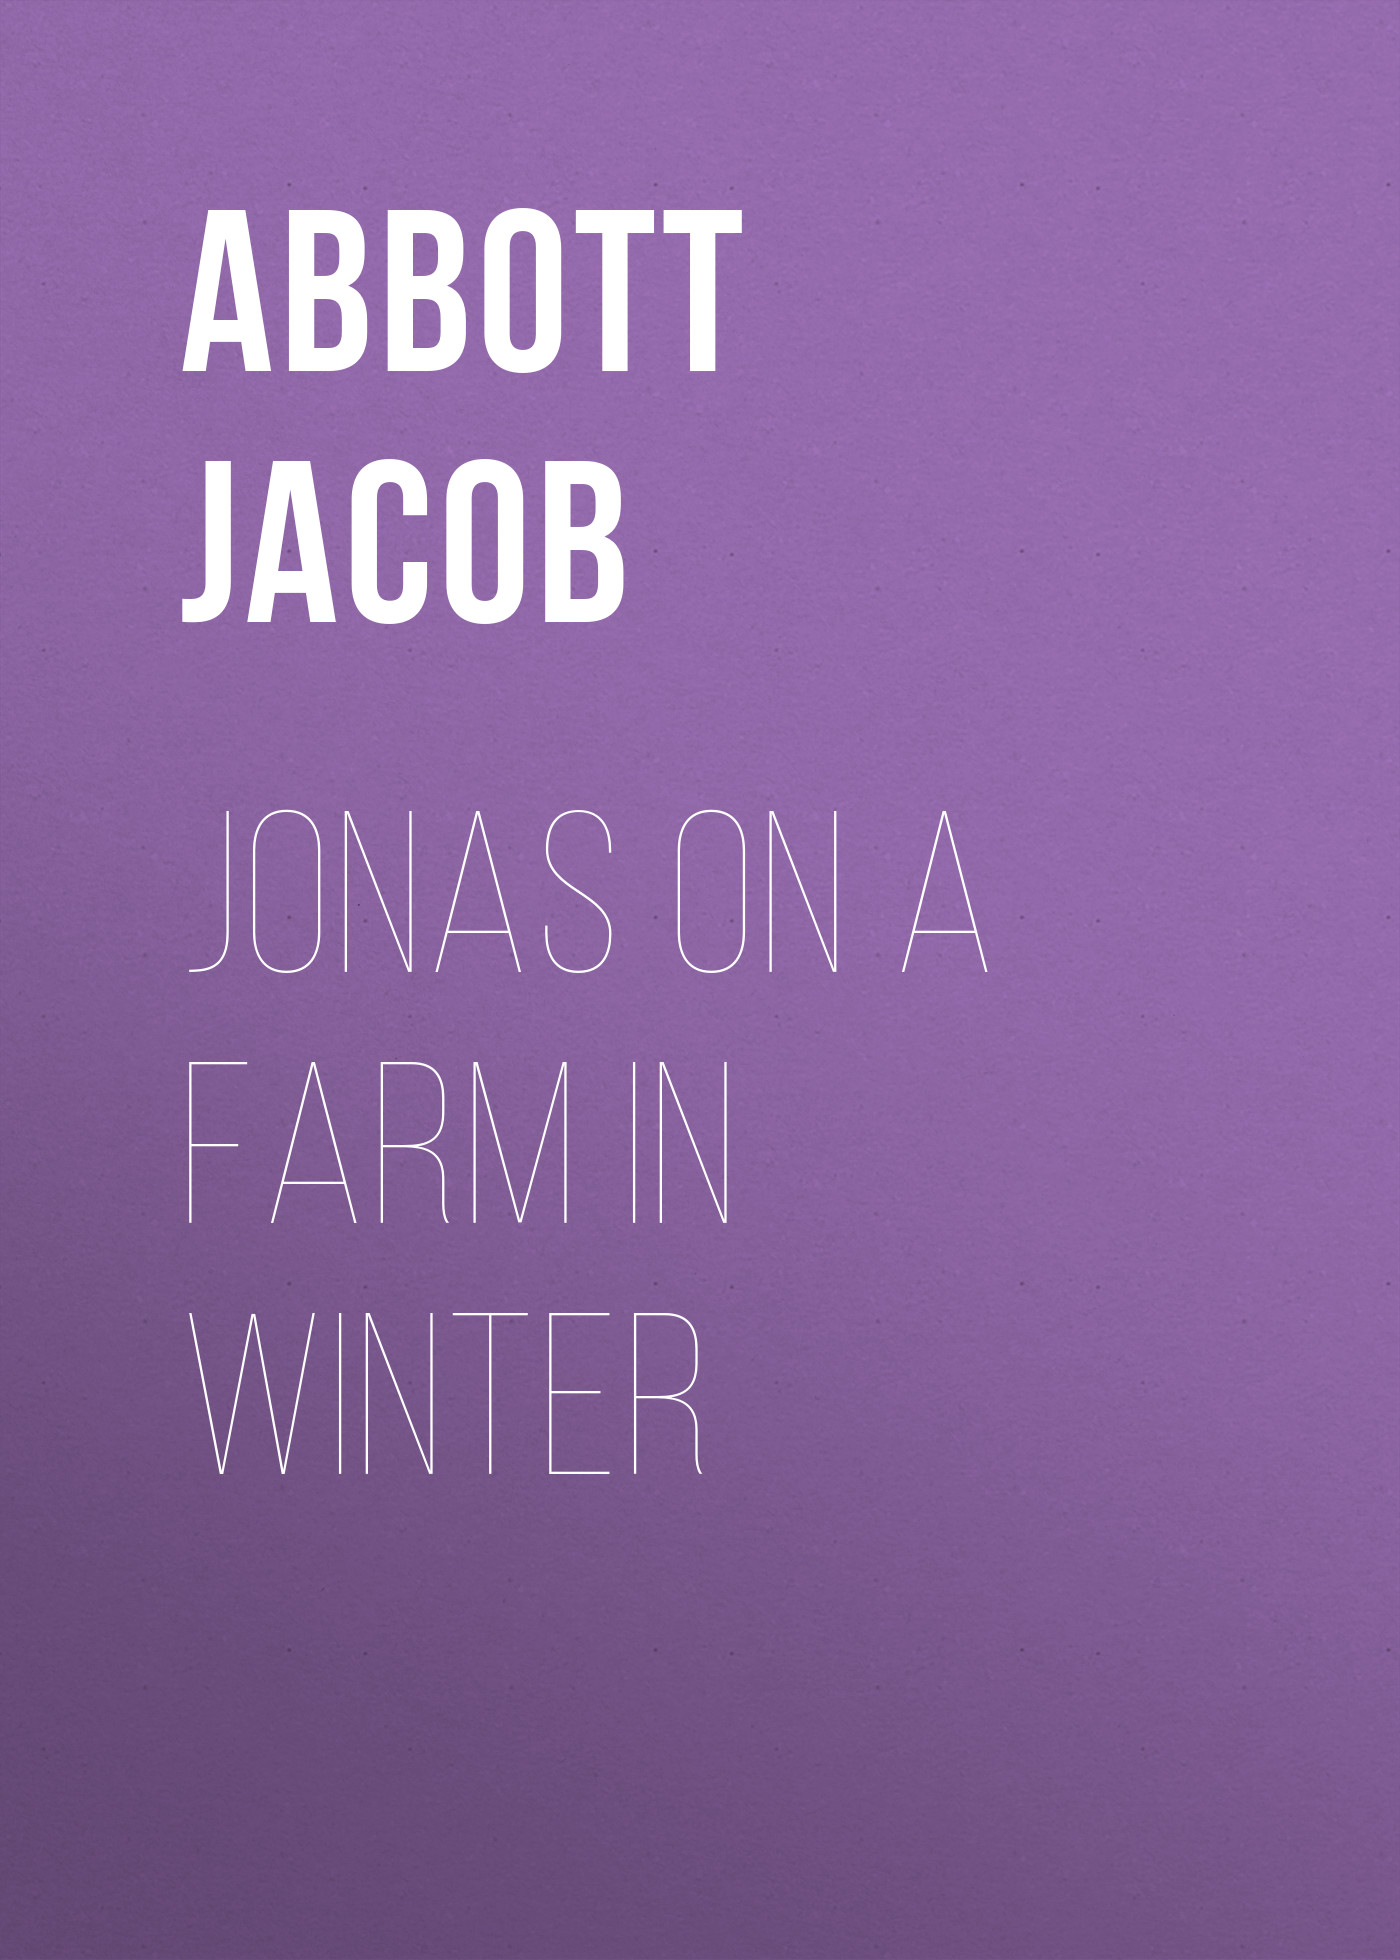 Фото - Abbott Jacob Jonas on a Farm in Winter at home on ladybug farm